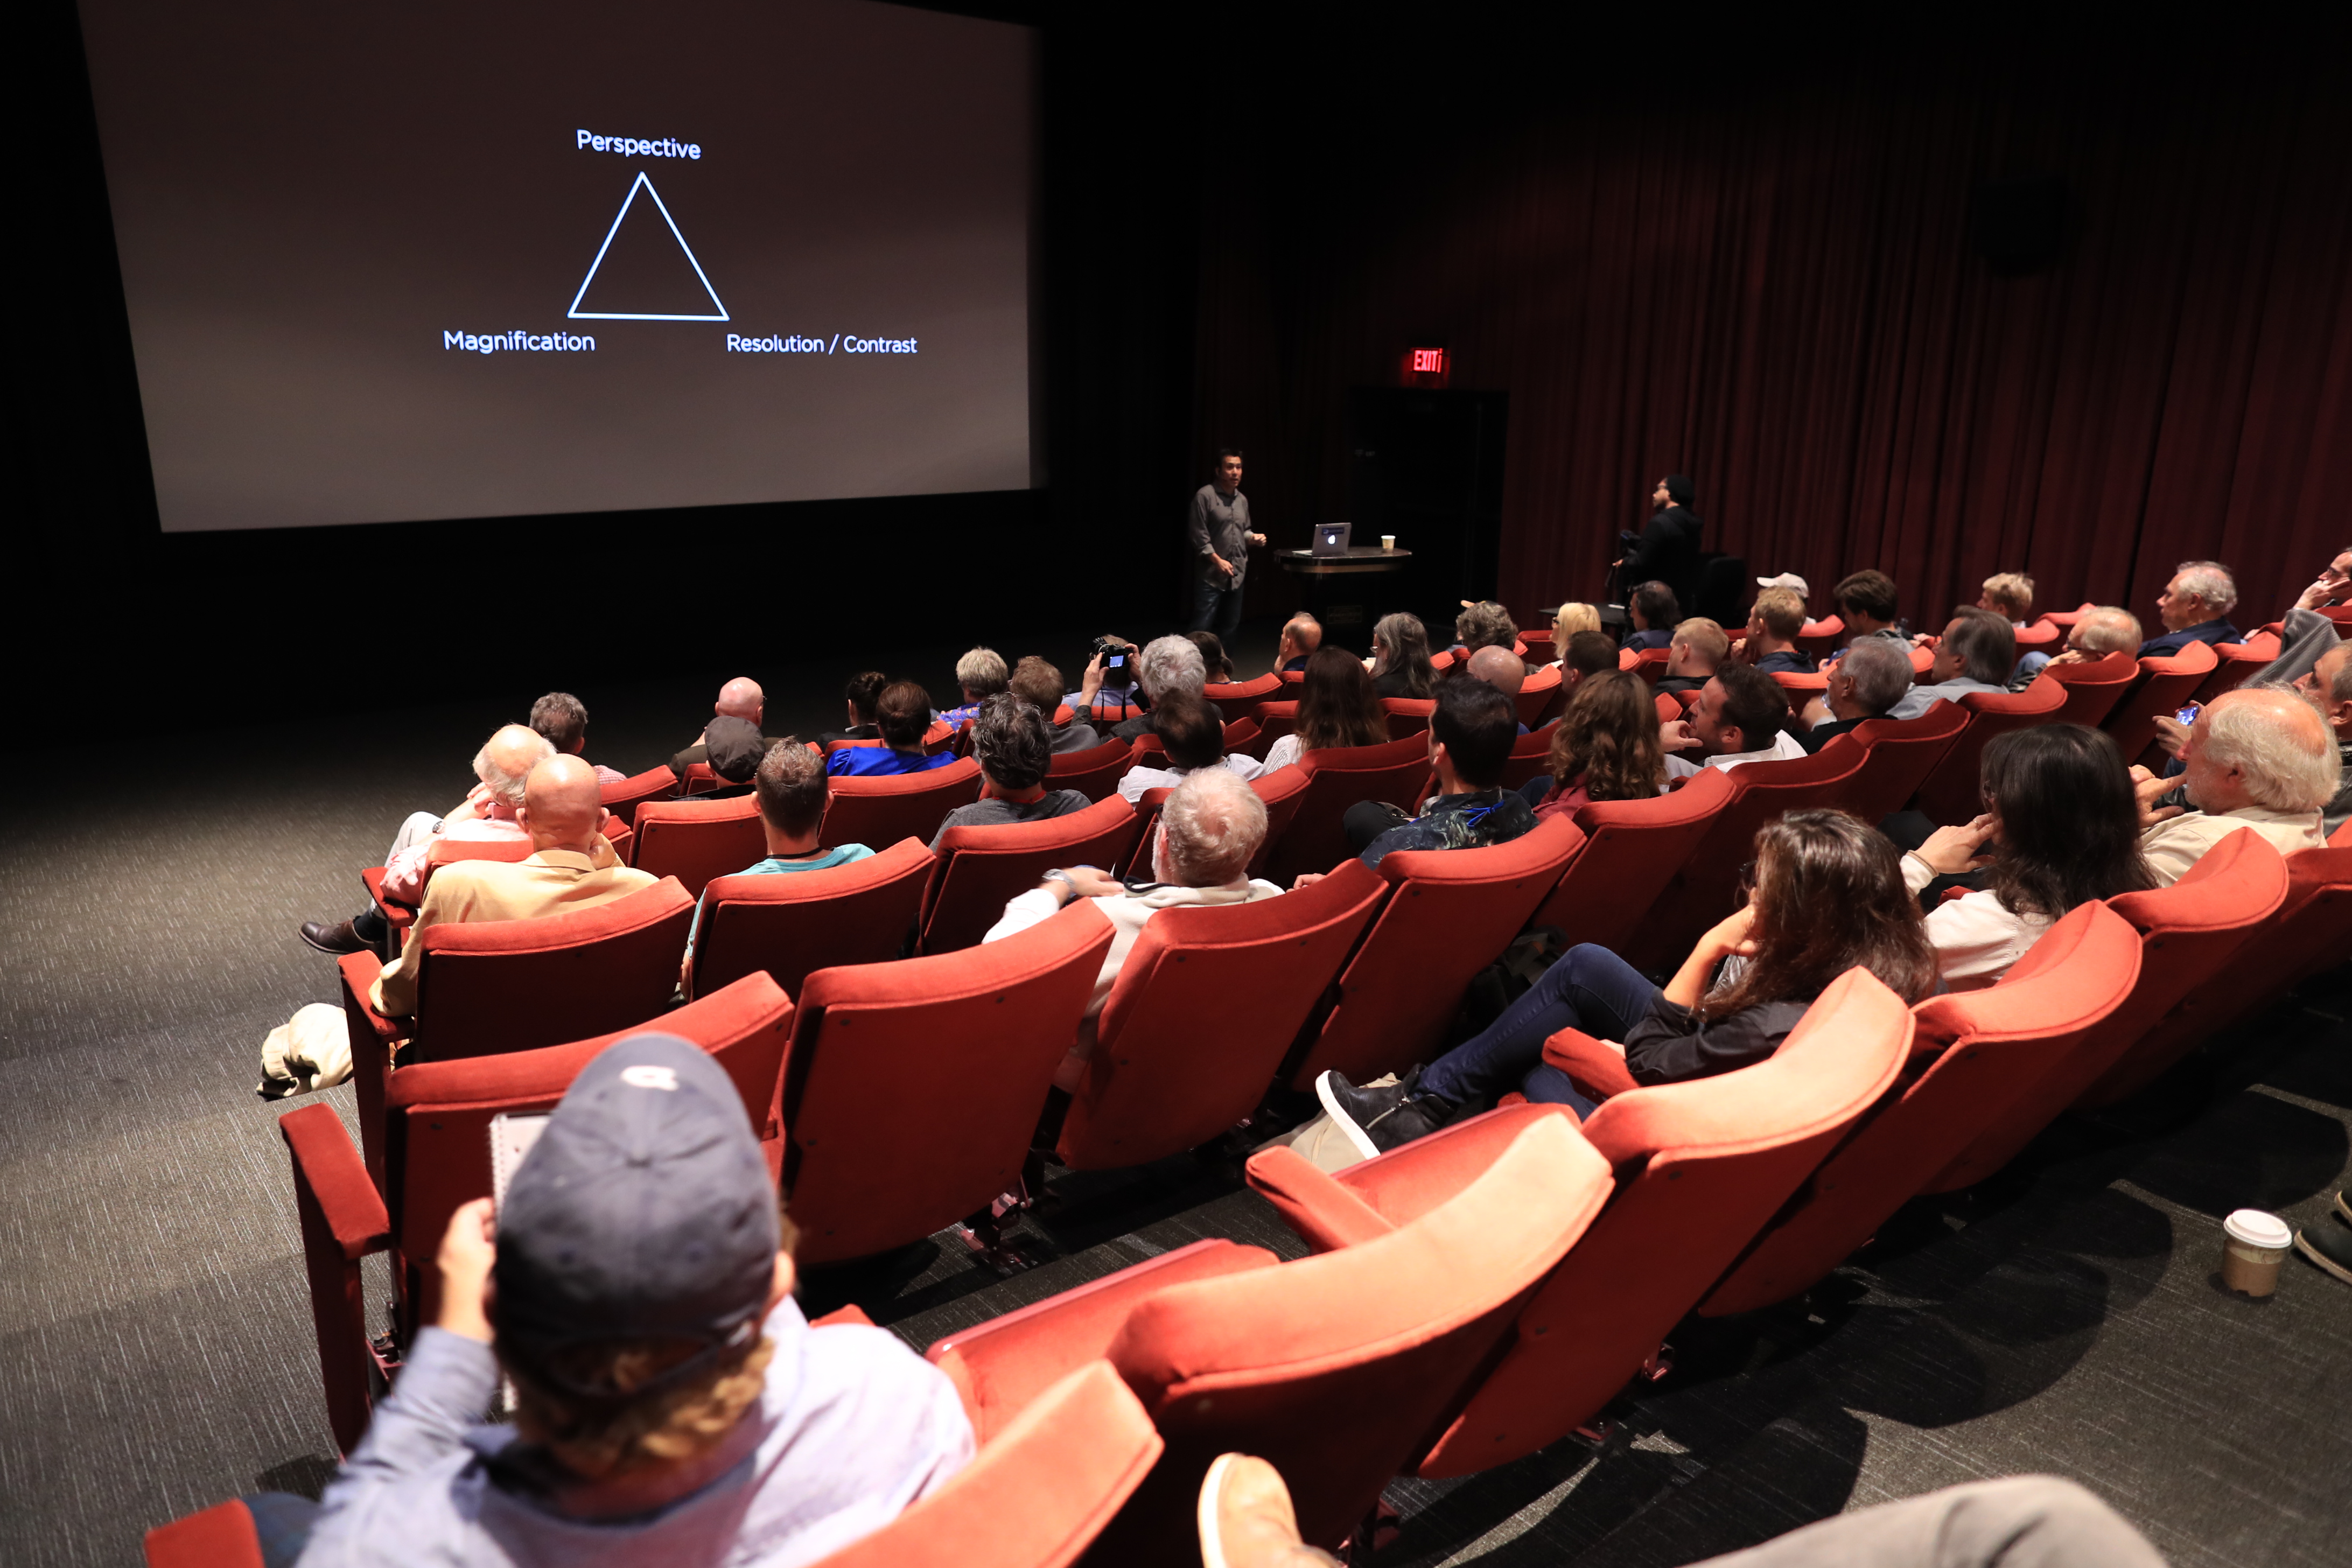 Dan Sasaki, Panavision's Vice President of Optical Engineering, leads the discussion at the Tak Miyagishima Theater. Photo by James Neihouse, ASC